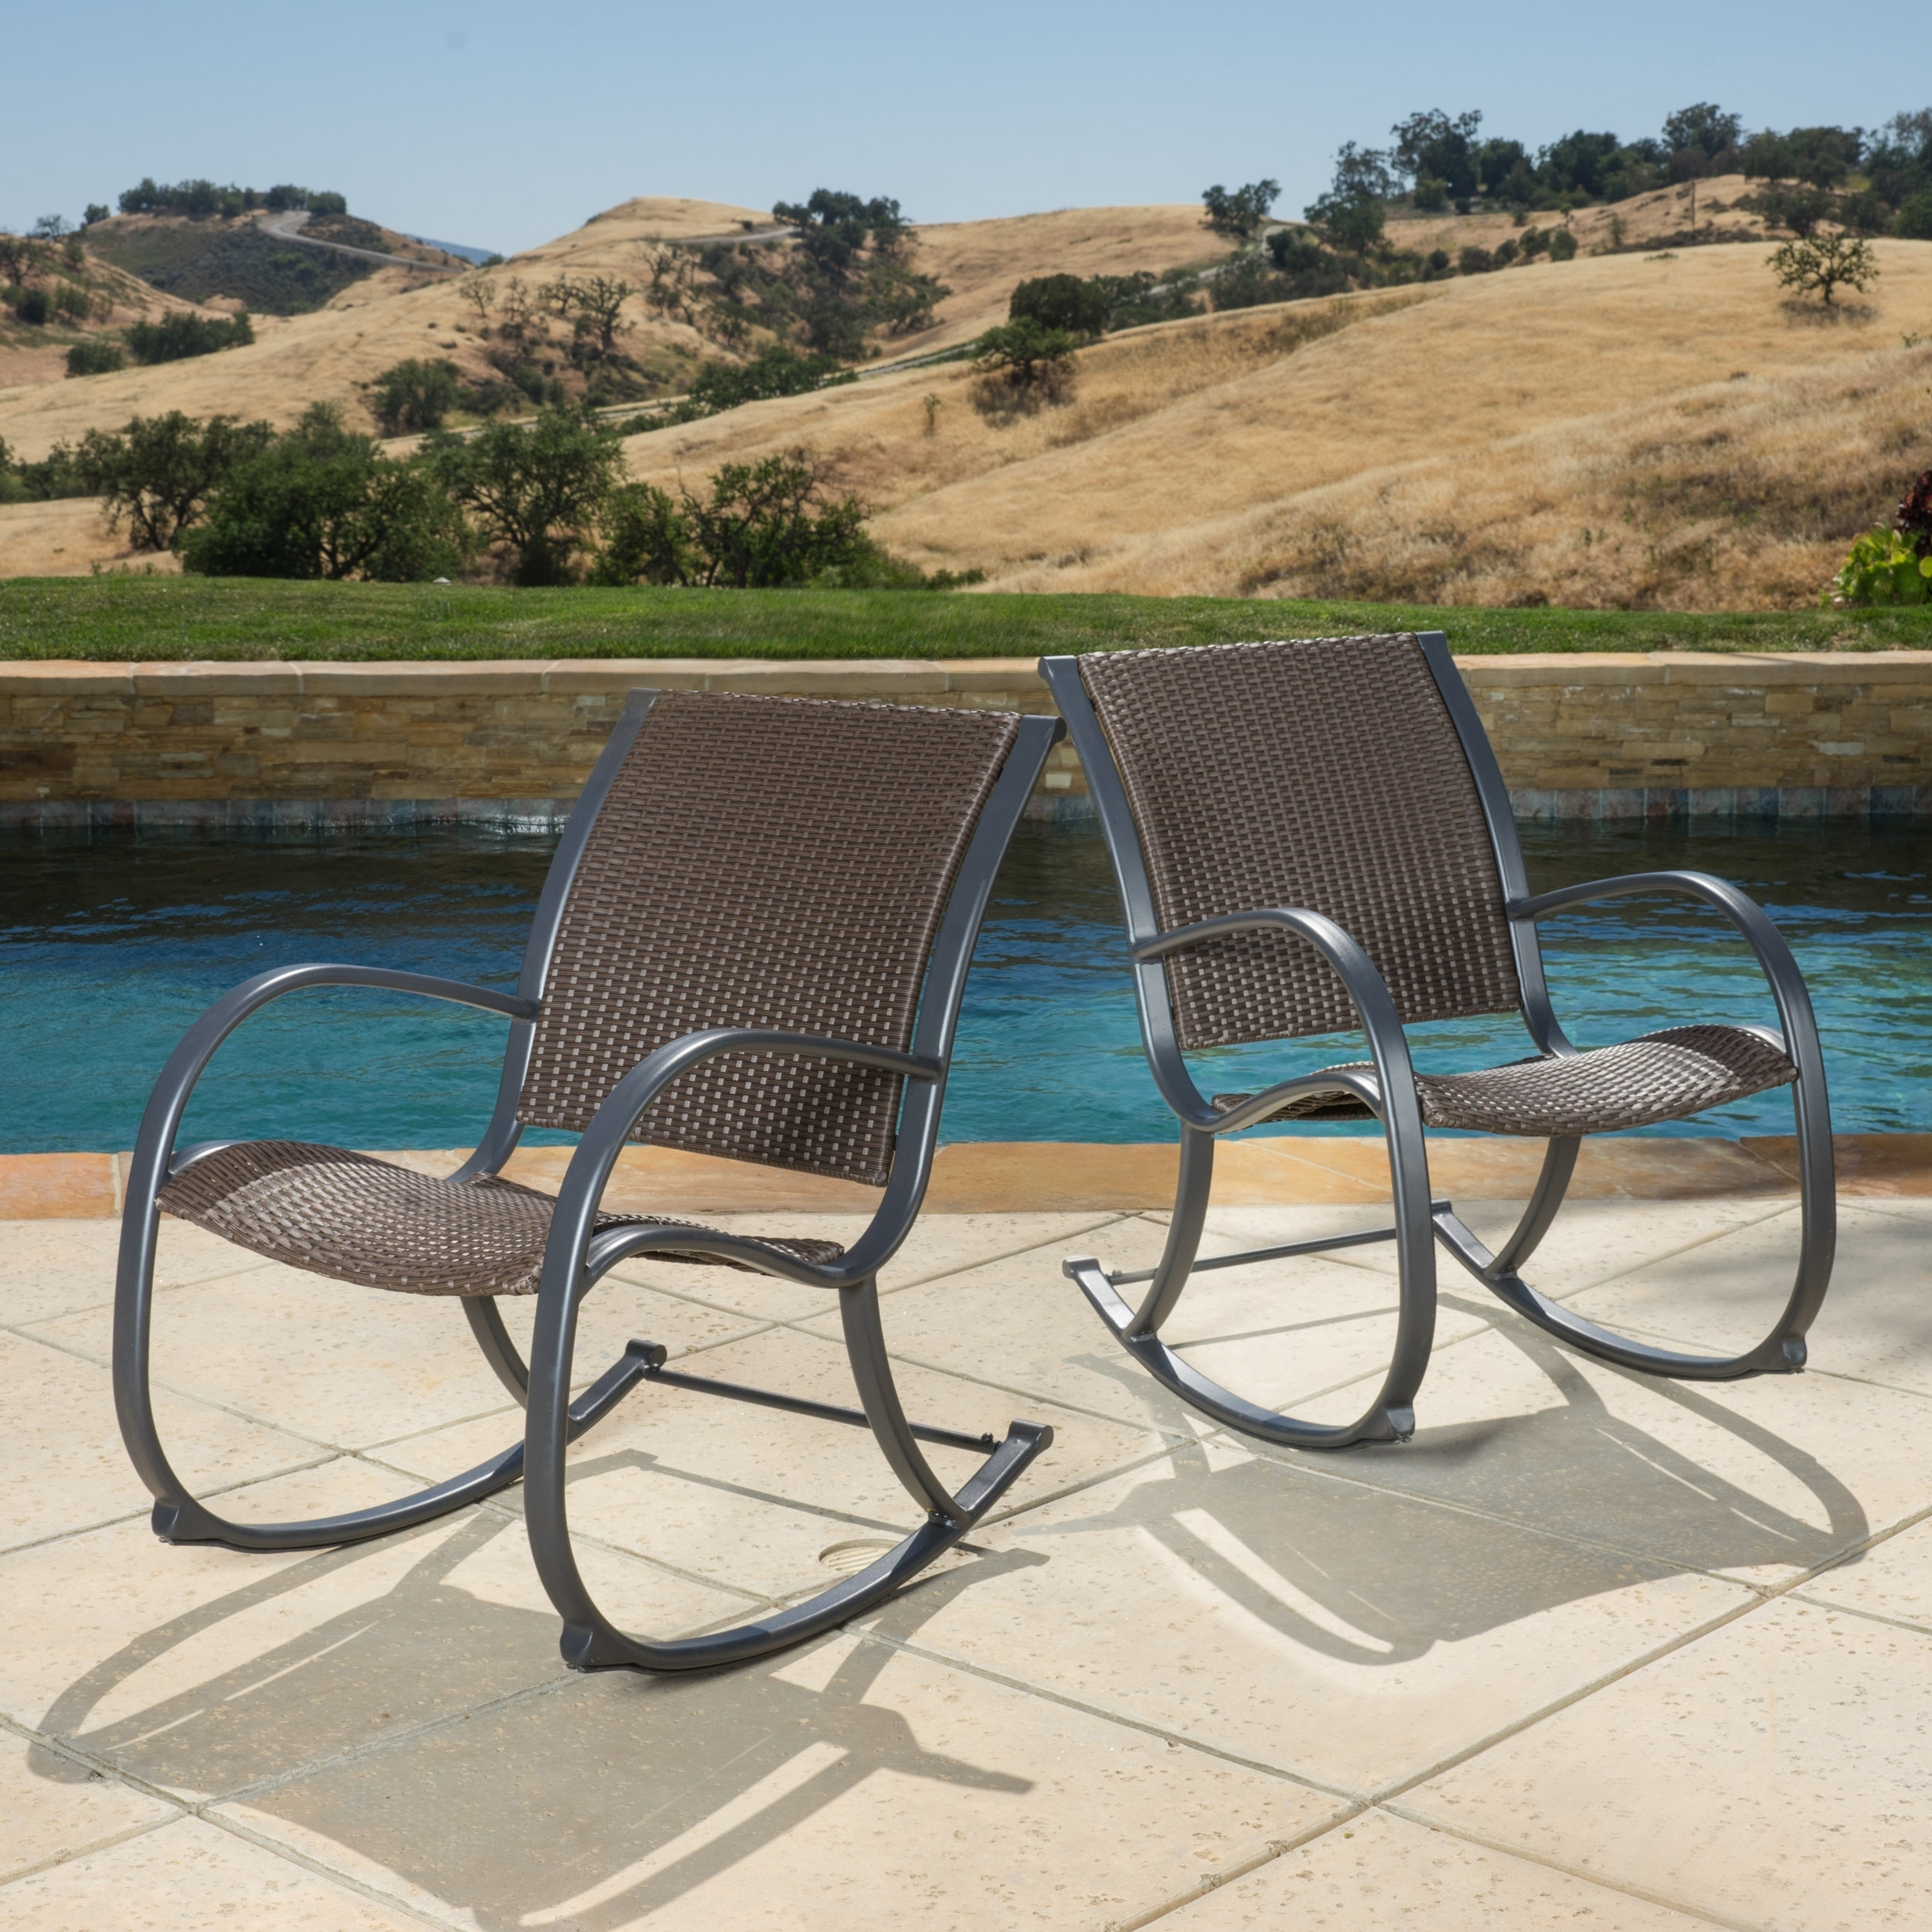 Popular Photo of Wicker Rocking Chairs Sets